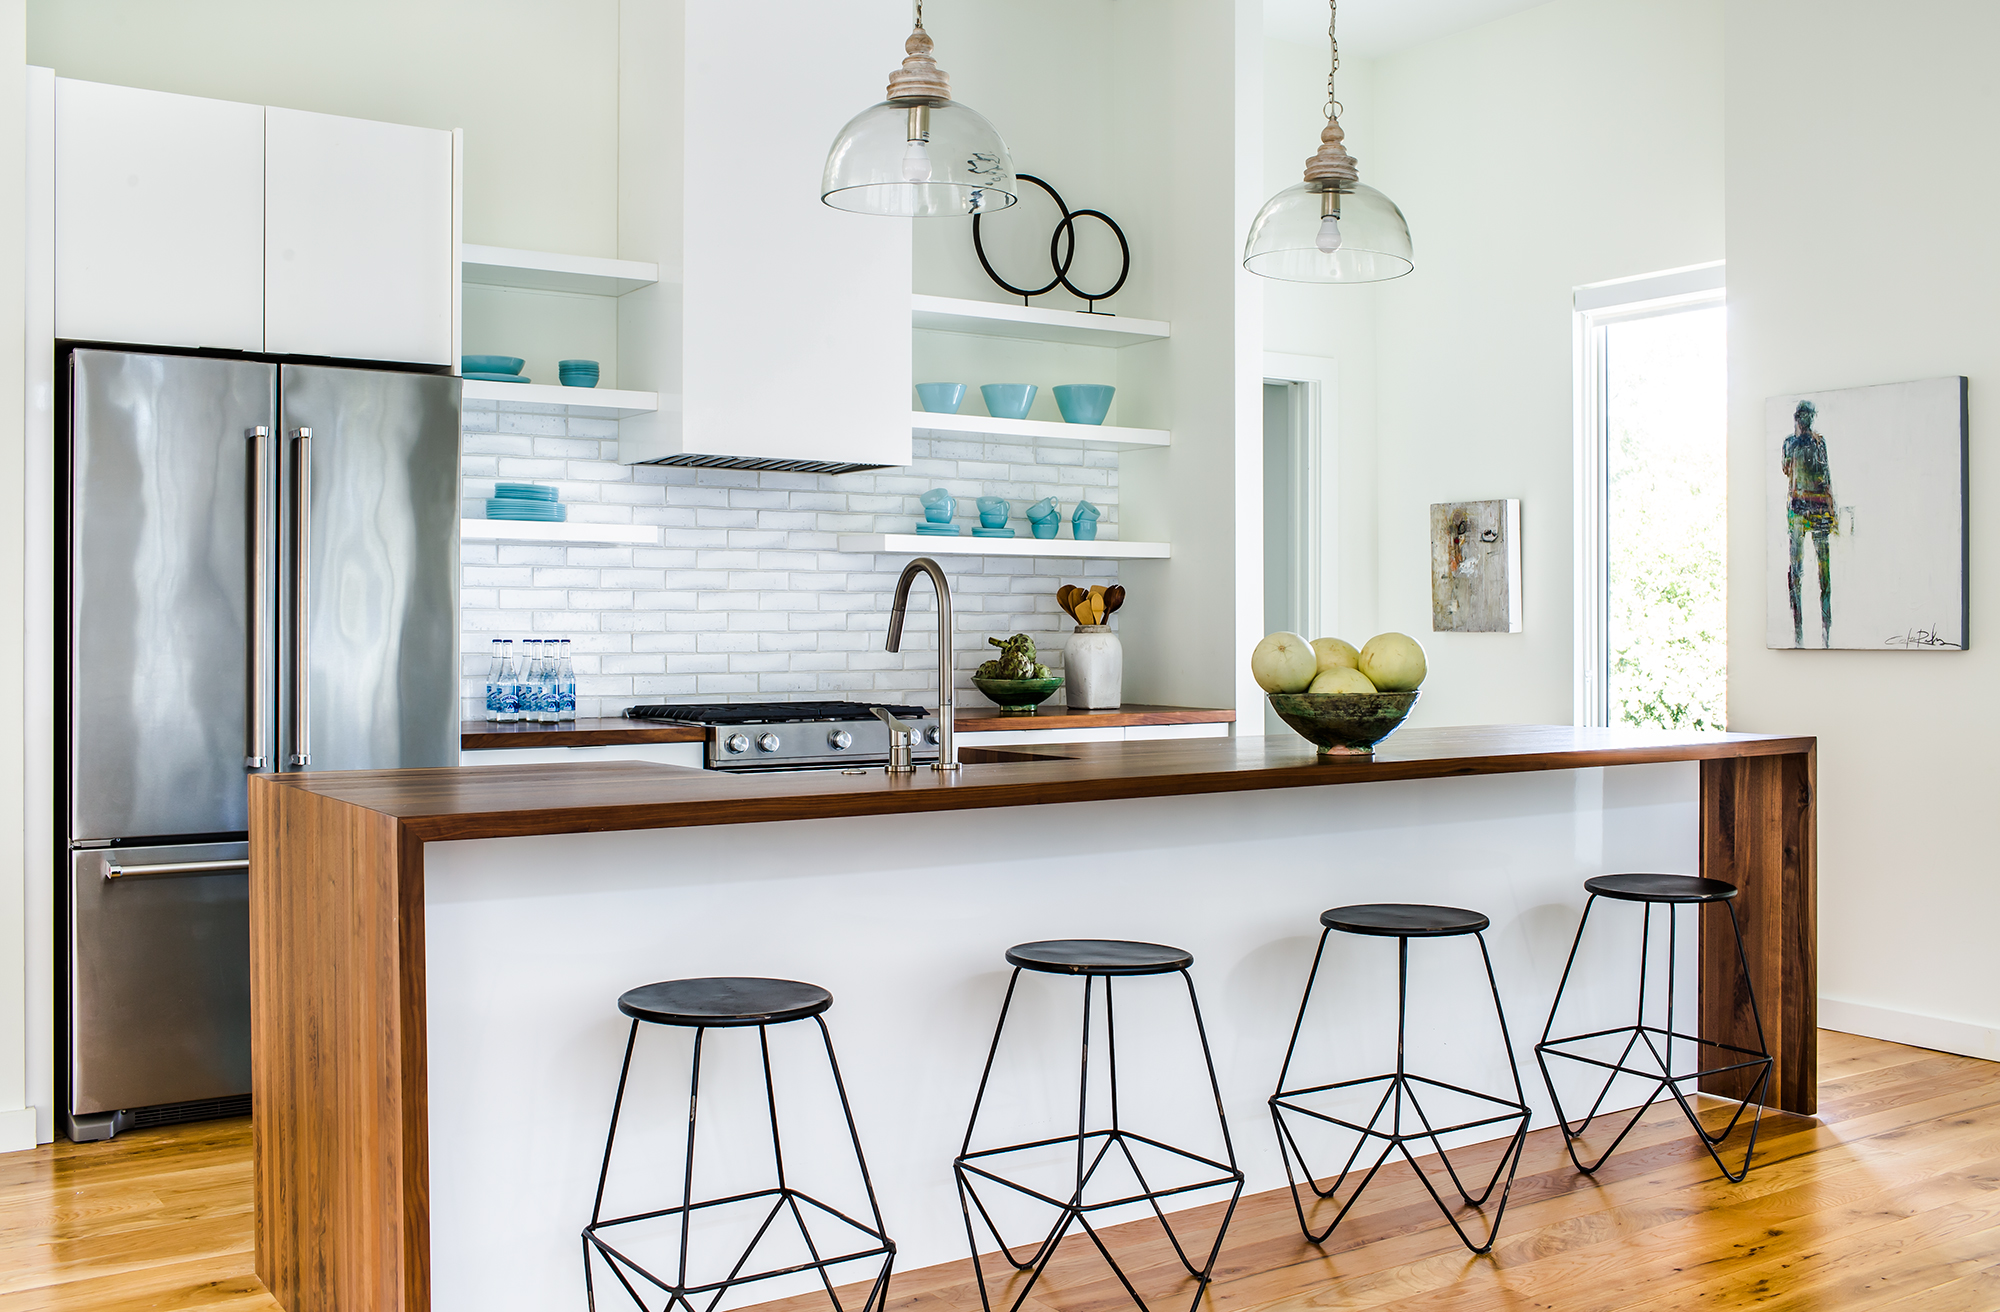 modern on connecticut ave kitchen | jeff herr photography